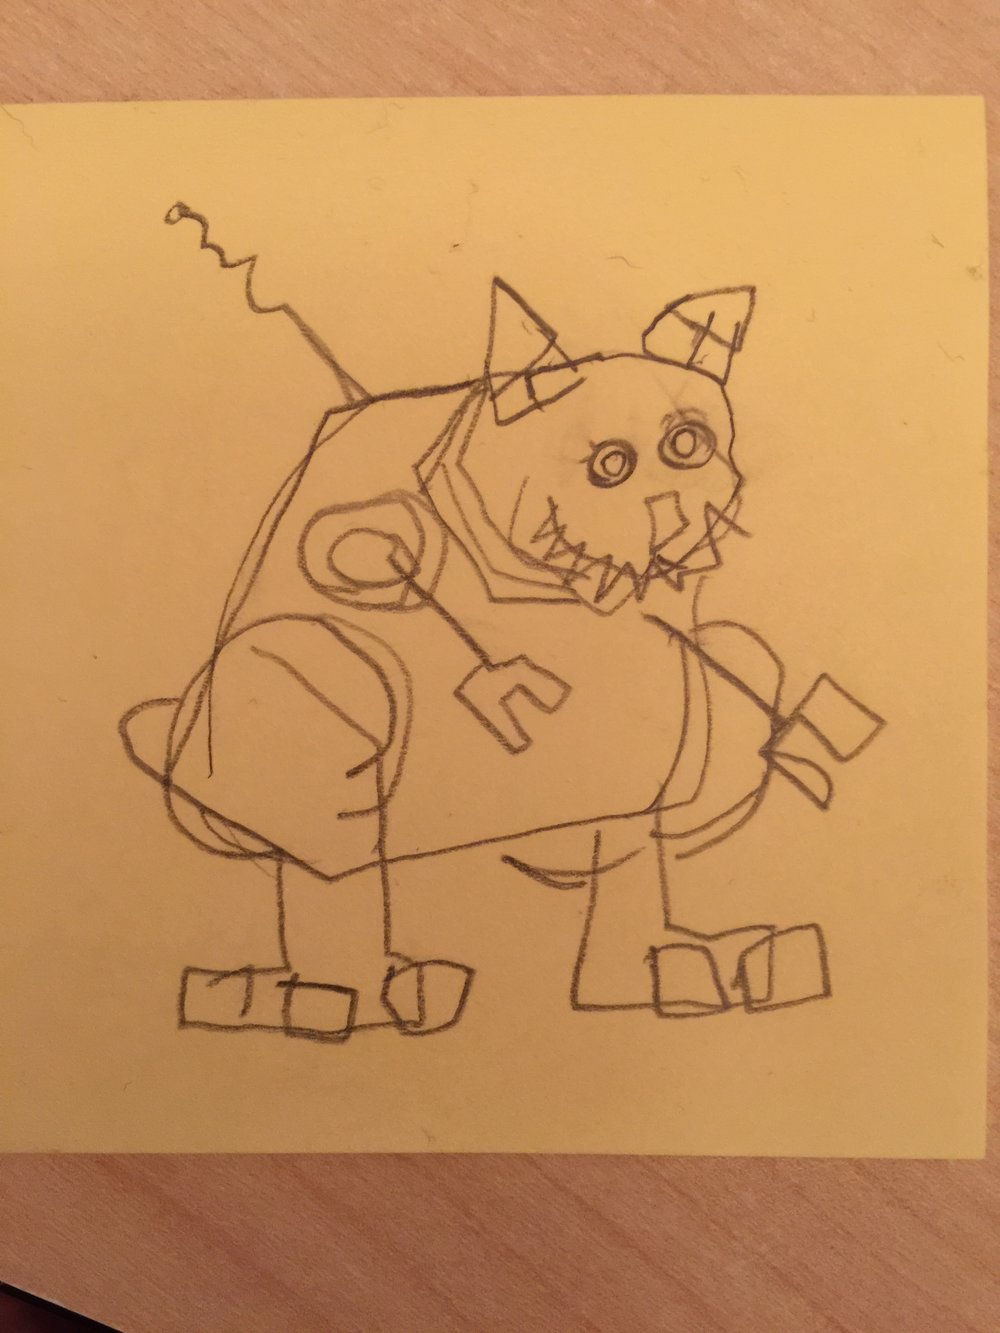 Archie's sketch of a robot bear.